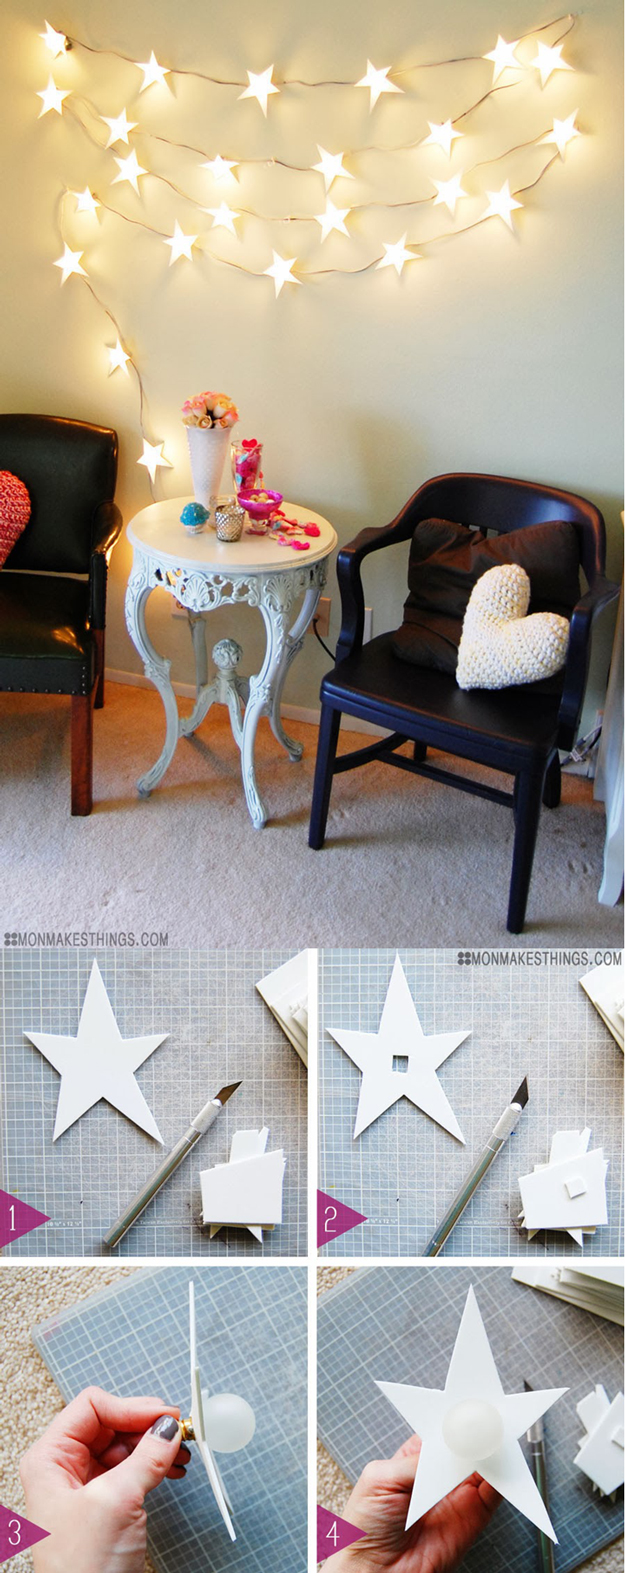 String Light DIY ideas for Cool Home Decor | Star Garland Christmas Light DIY are Fun for Teens Room, Dorm, Apartment or Home | http://diyprojectsforteens.com/diy-string-light-ideas/